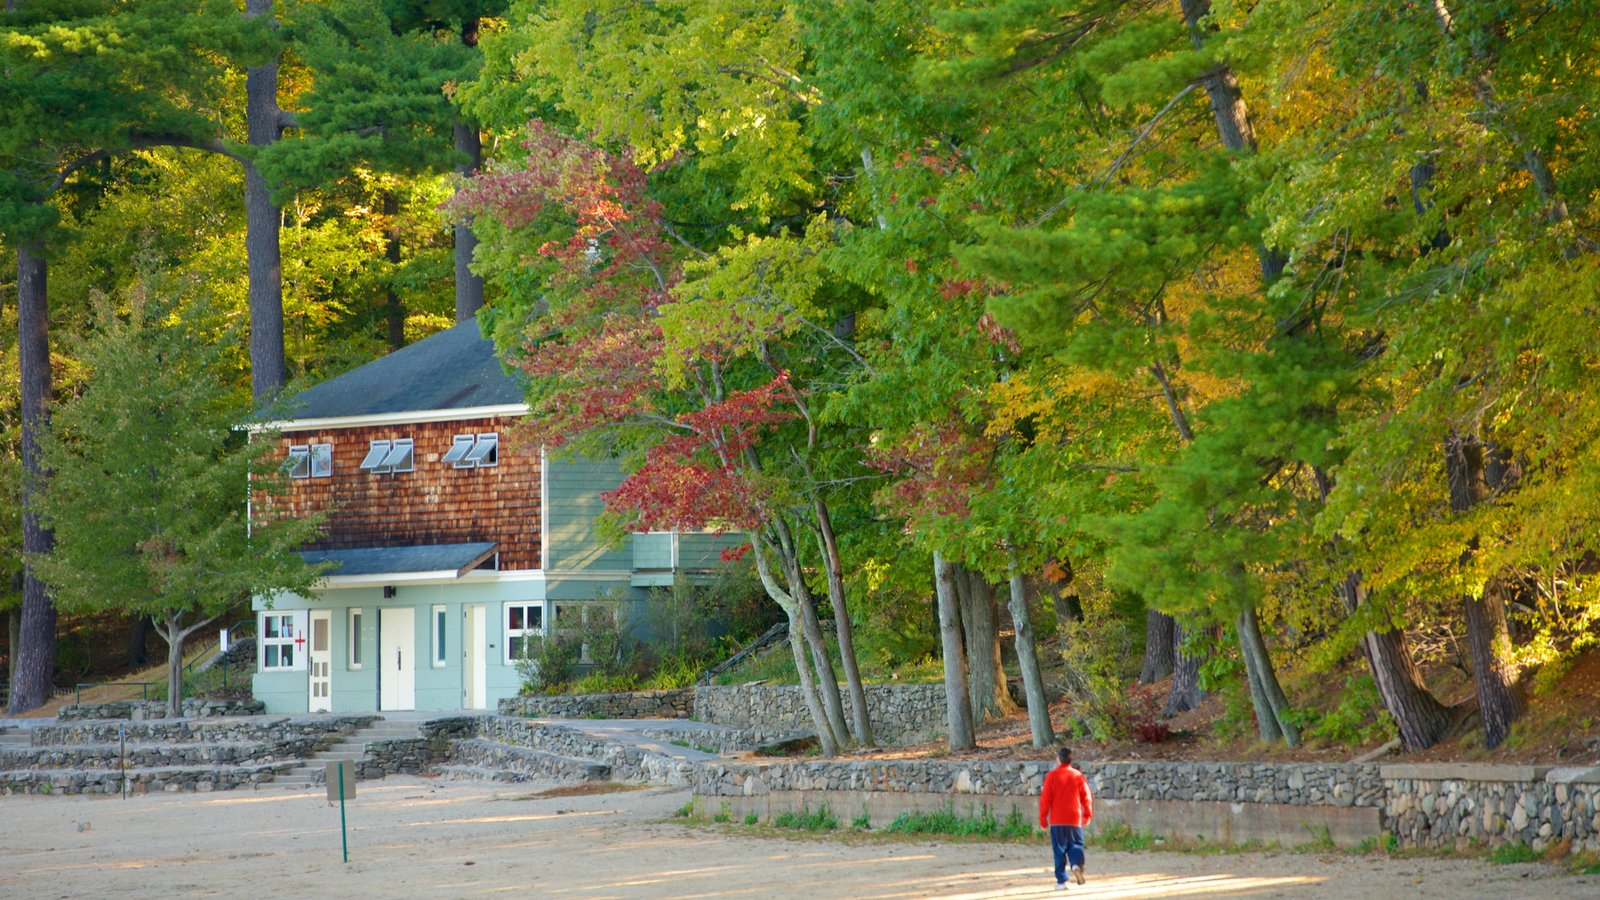 Walden Pond featuring a house as well as an individual male